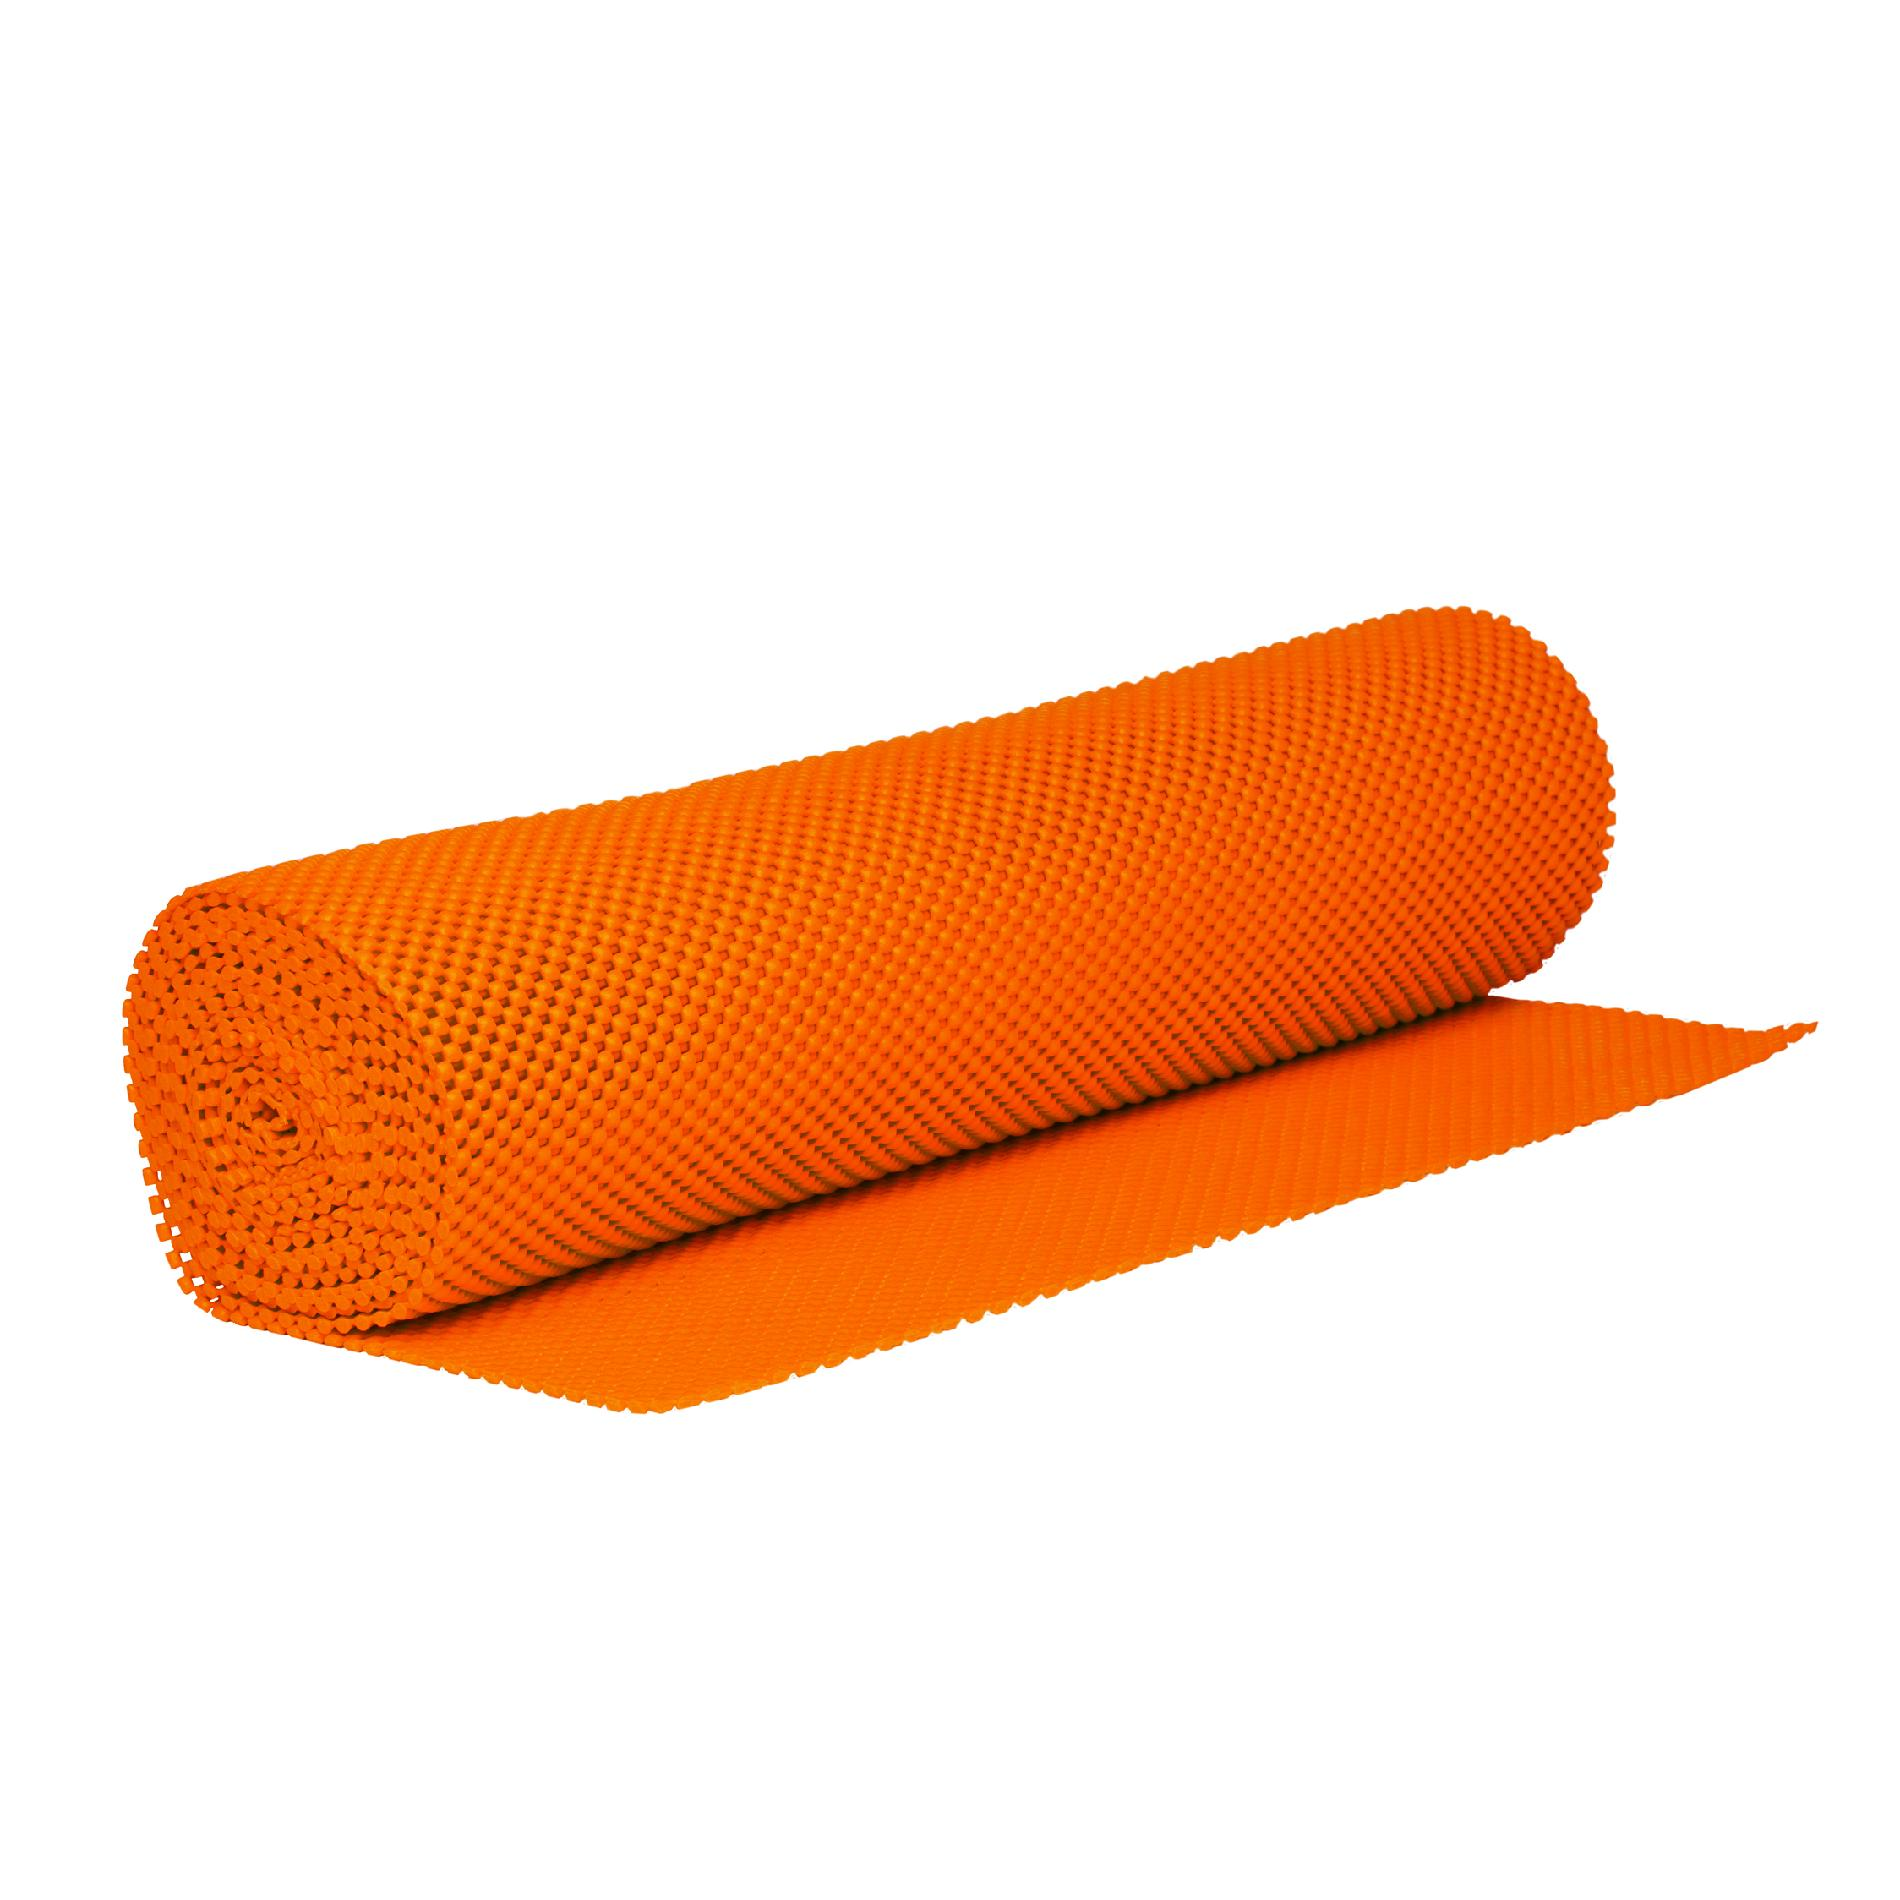 Viper Tool Storage 18-Inch x 12-Foot Drawer Liner, Orange